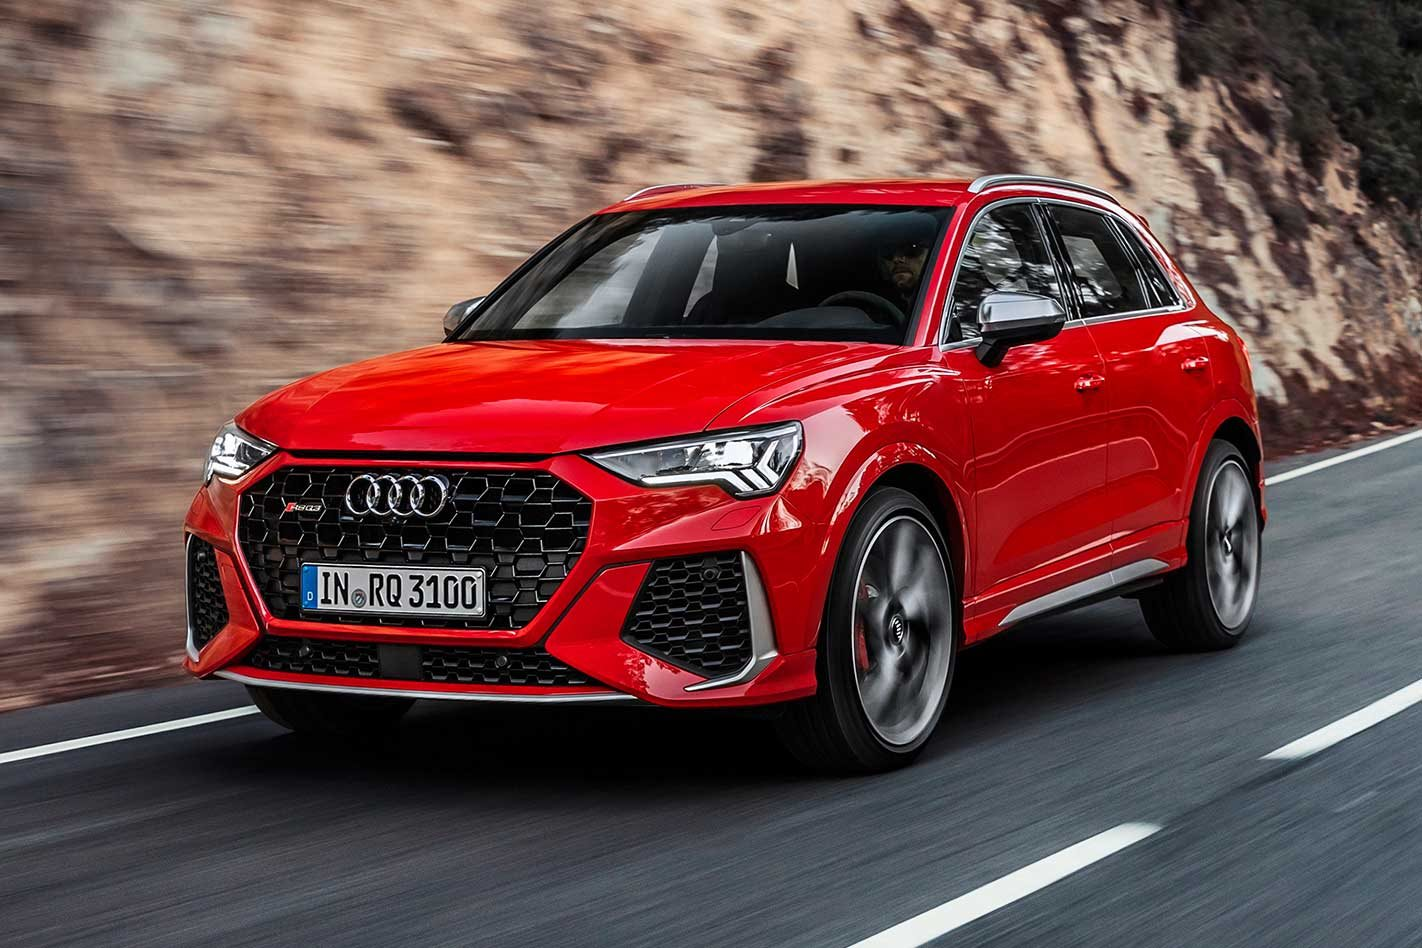 2020 Audi RS Q3 review